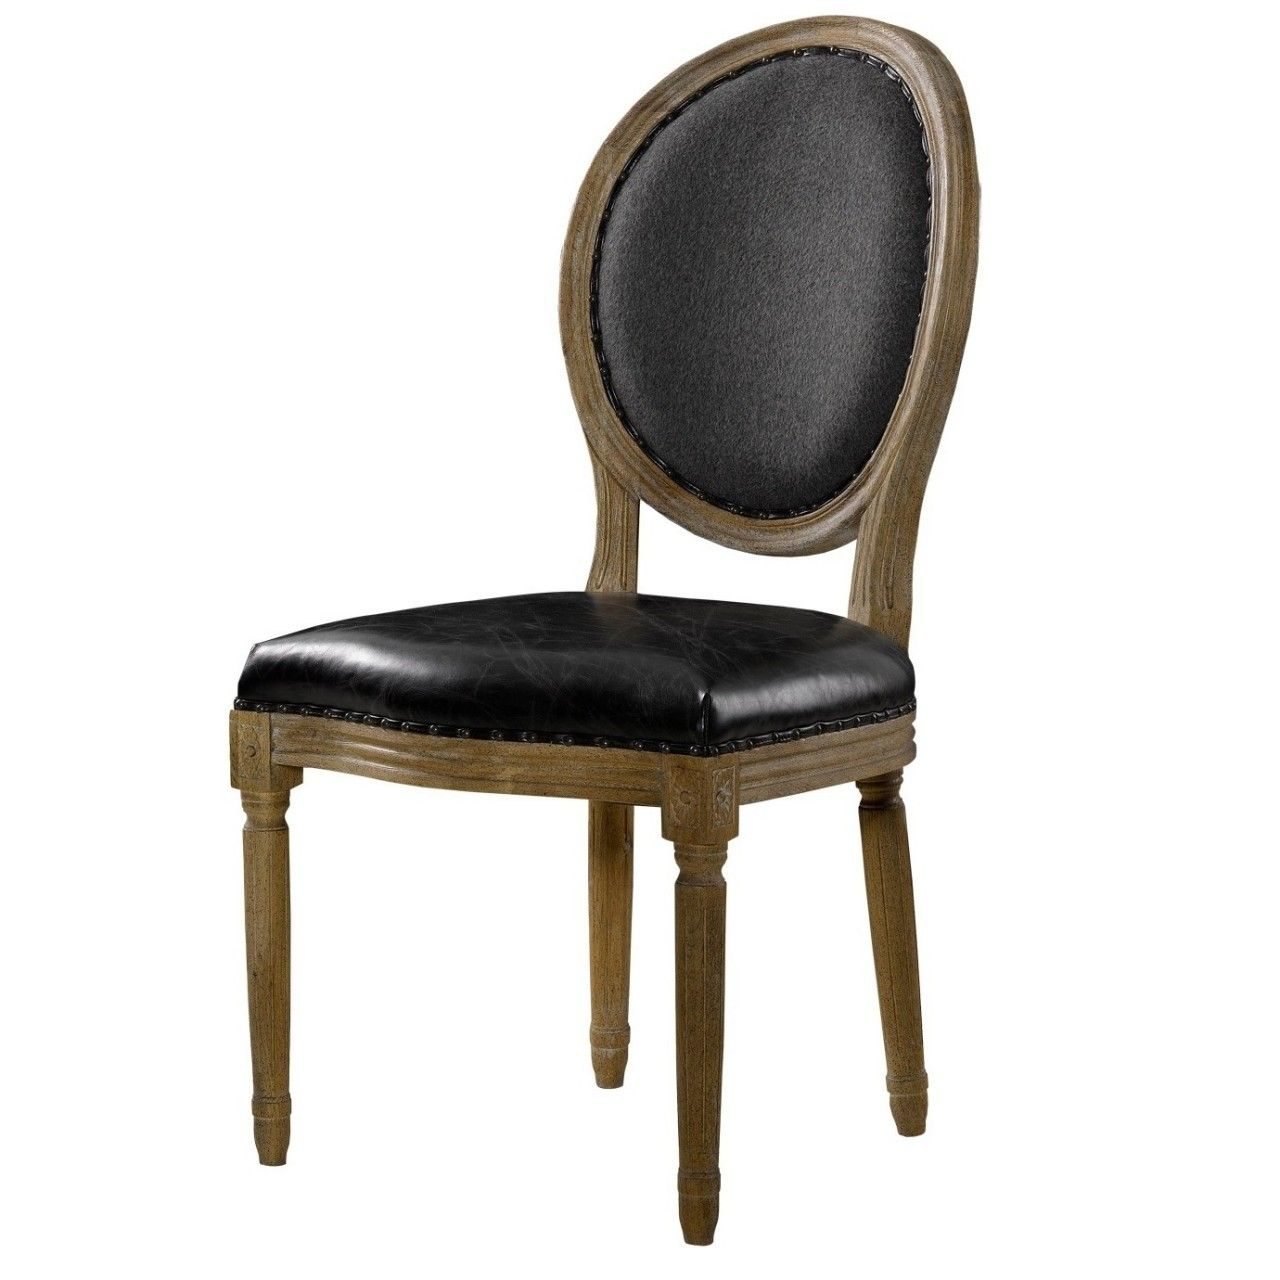 Leder Esszimmerstühle Louis Dining Side Chair In Black Leather Decorate Furnishings